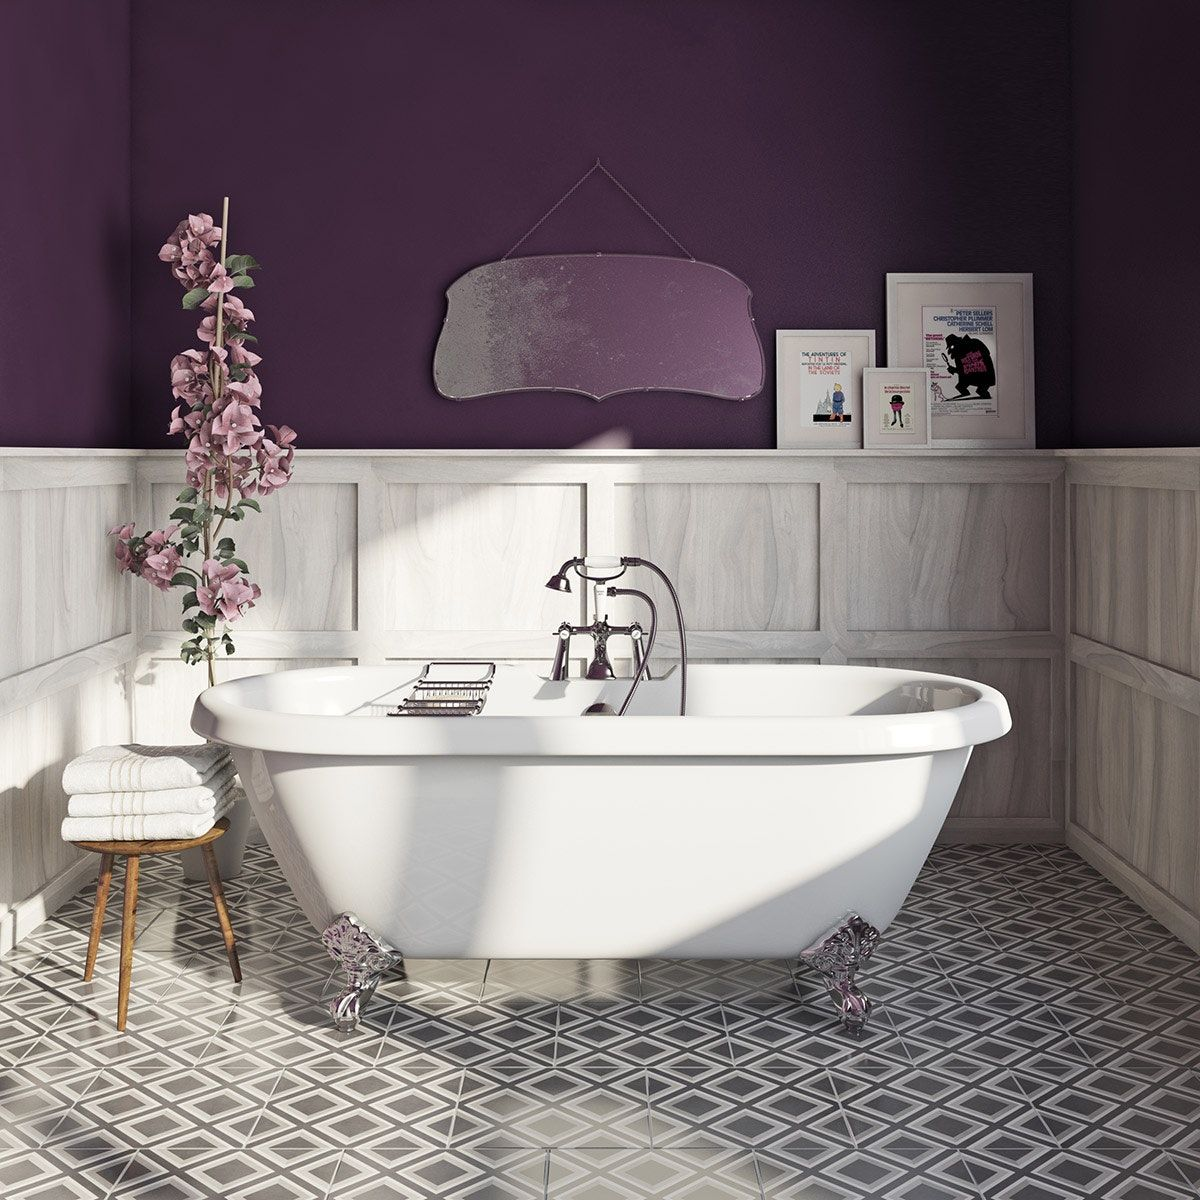 Craig Rose Sloe Gin Kitchen Bathroom Paint L Kitchens - Bathroom paint to prevent mold